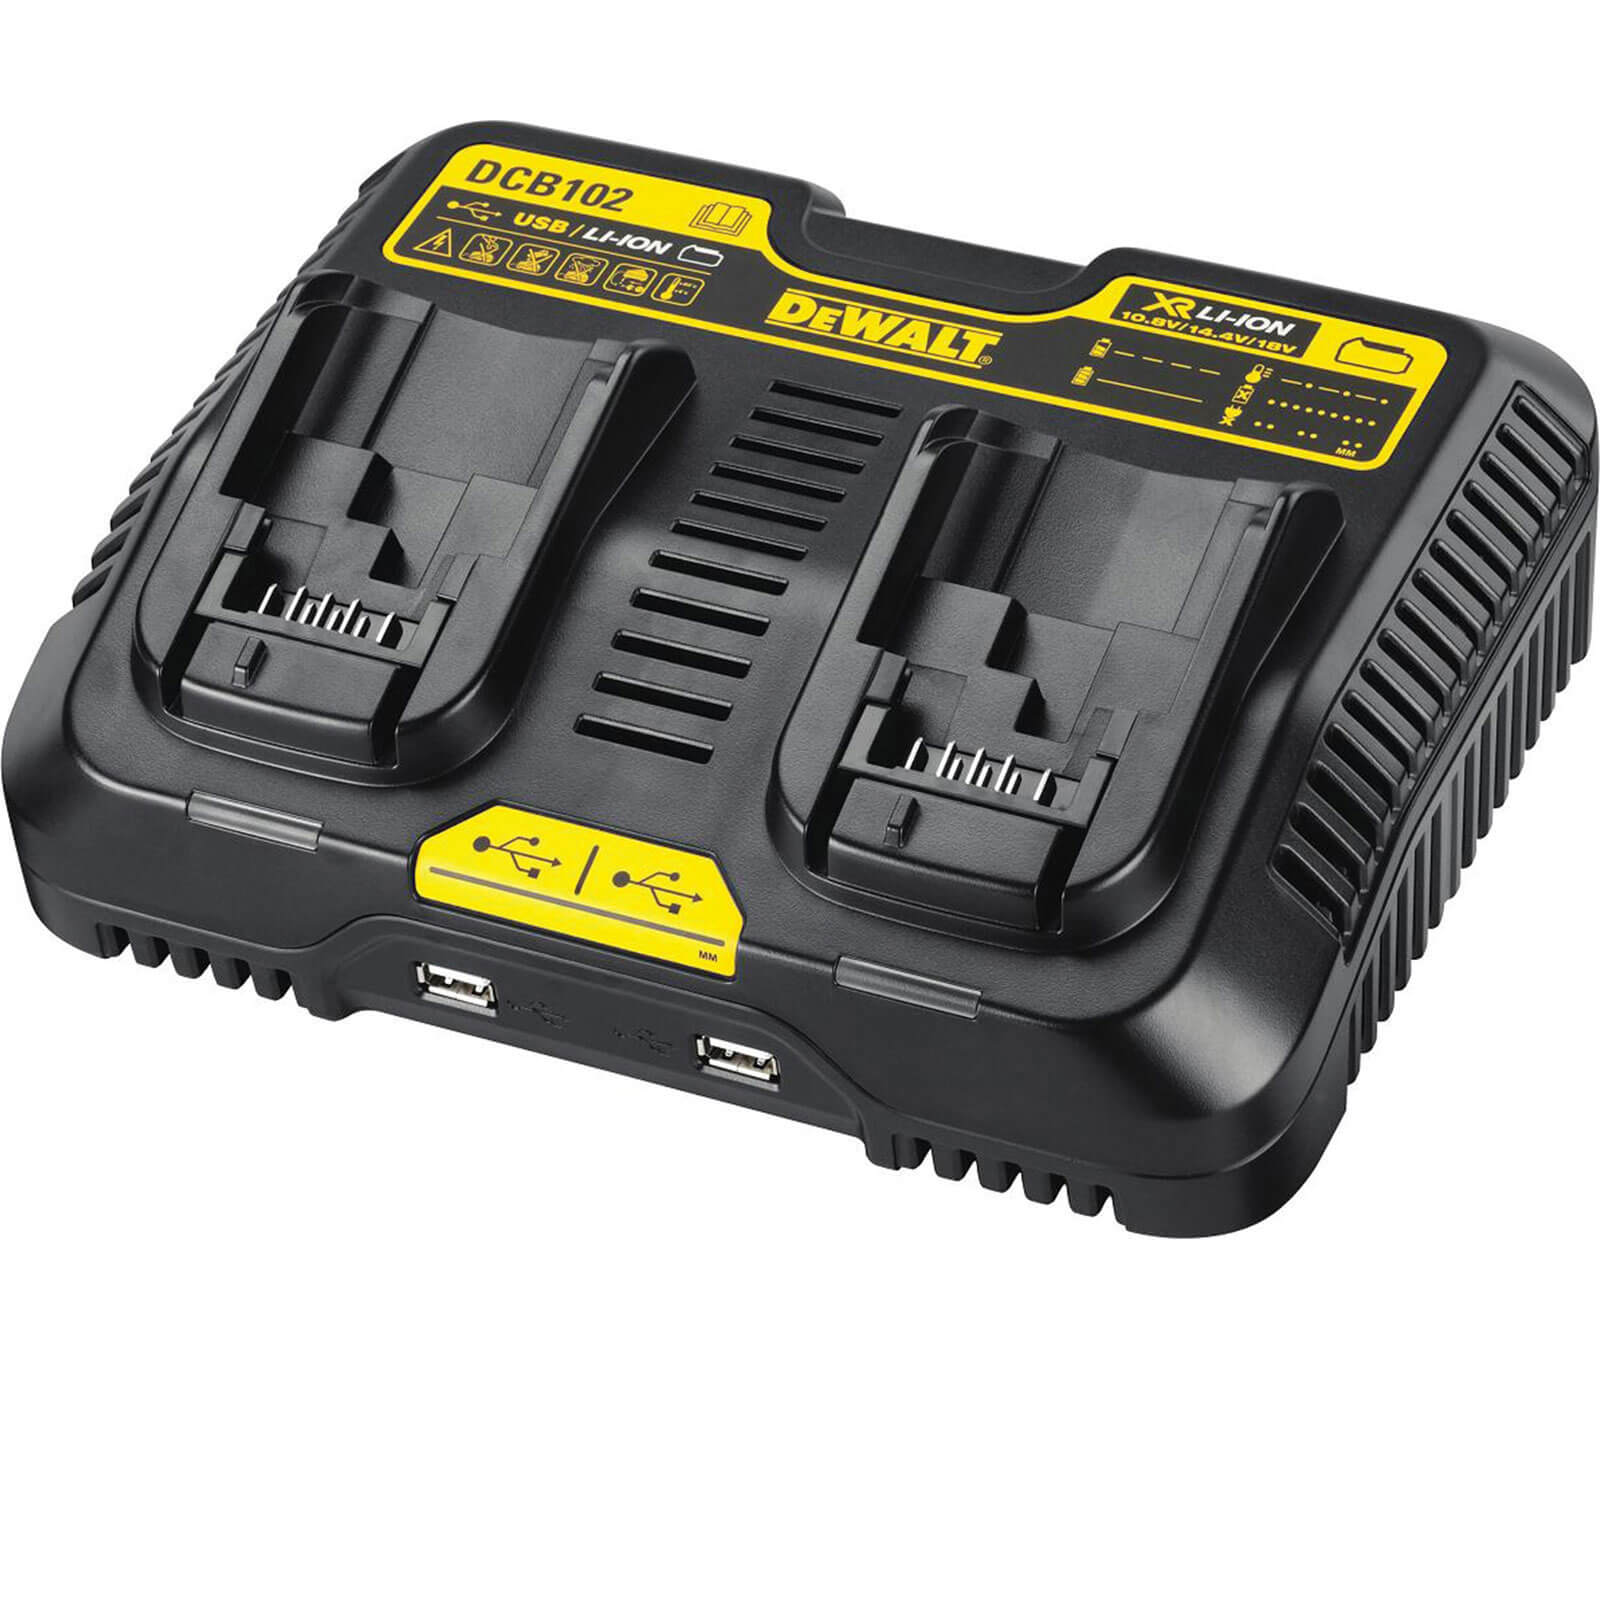 DeWalt DCB102 XR 18v Cordless Liion Twin Port Battery Charger 240v